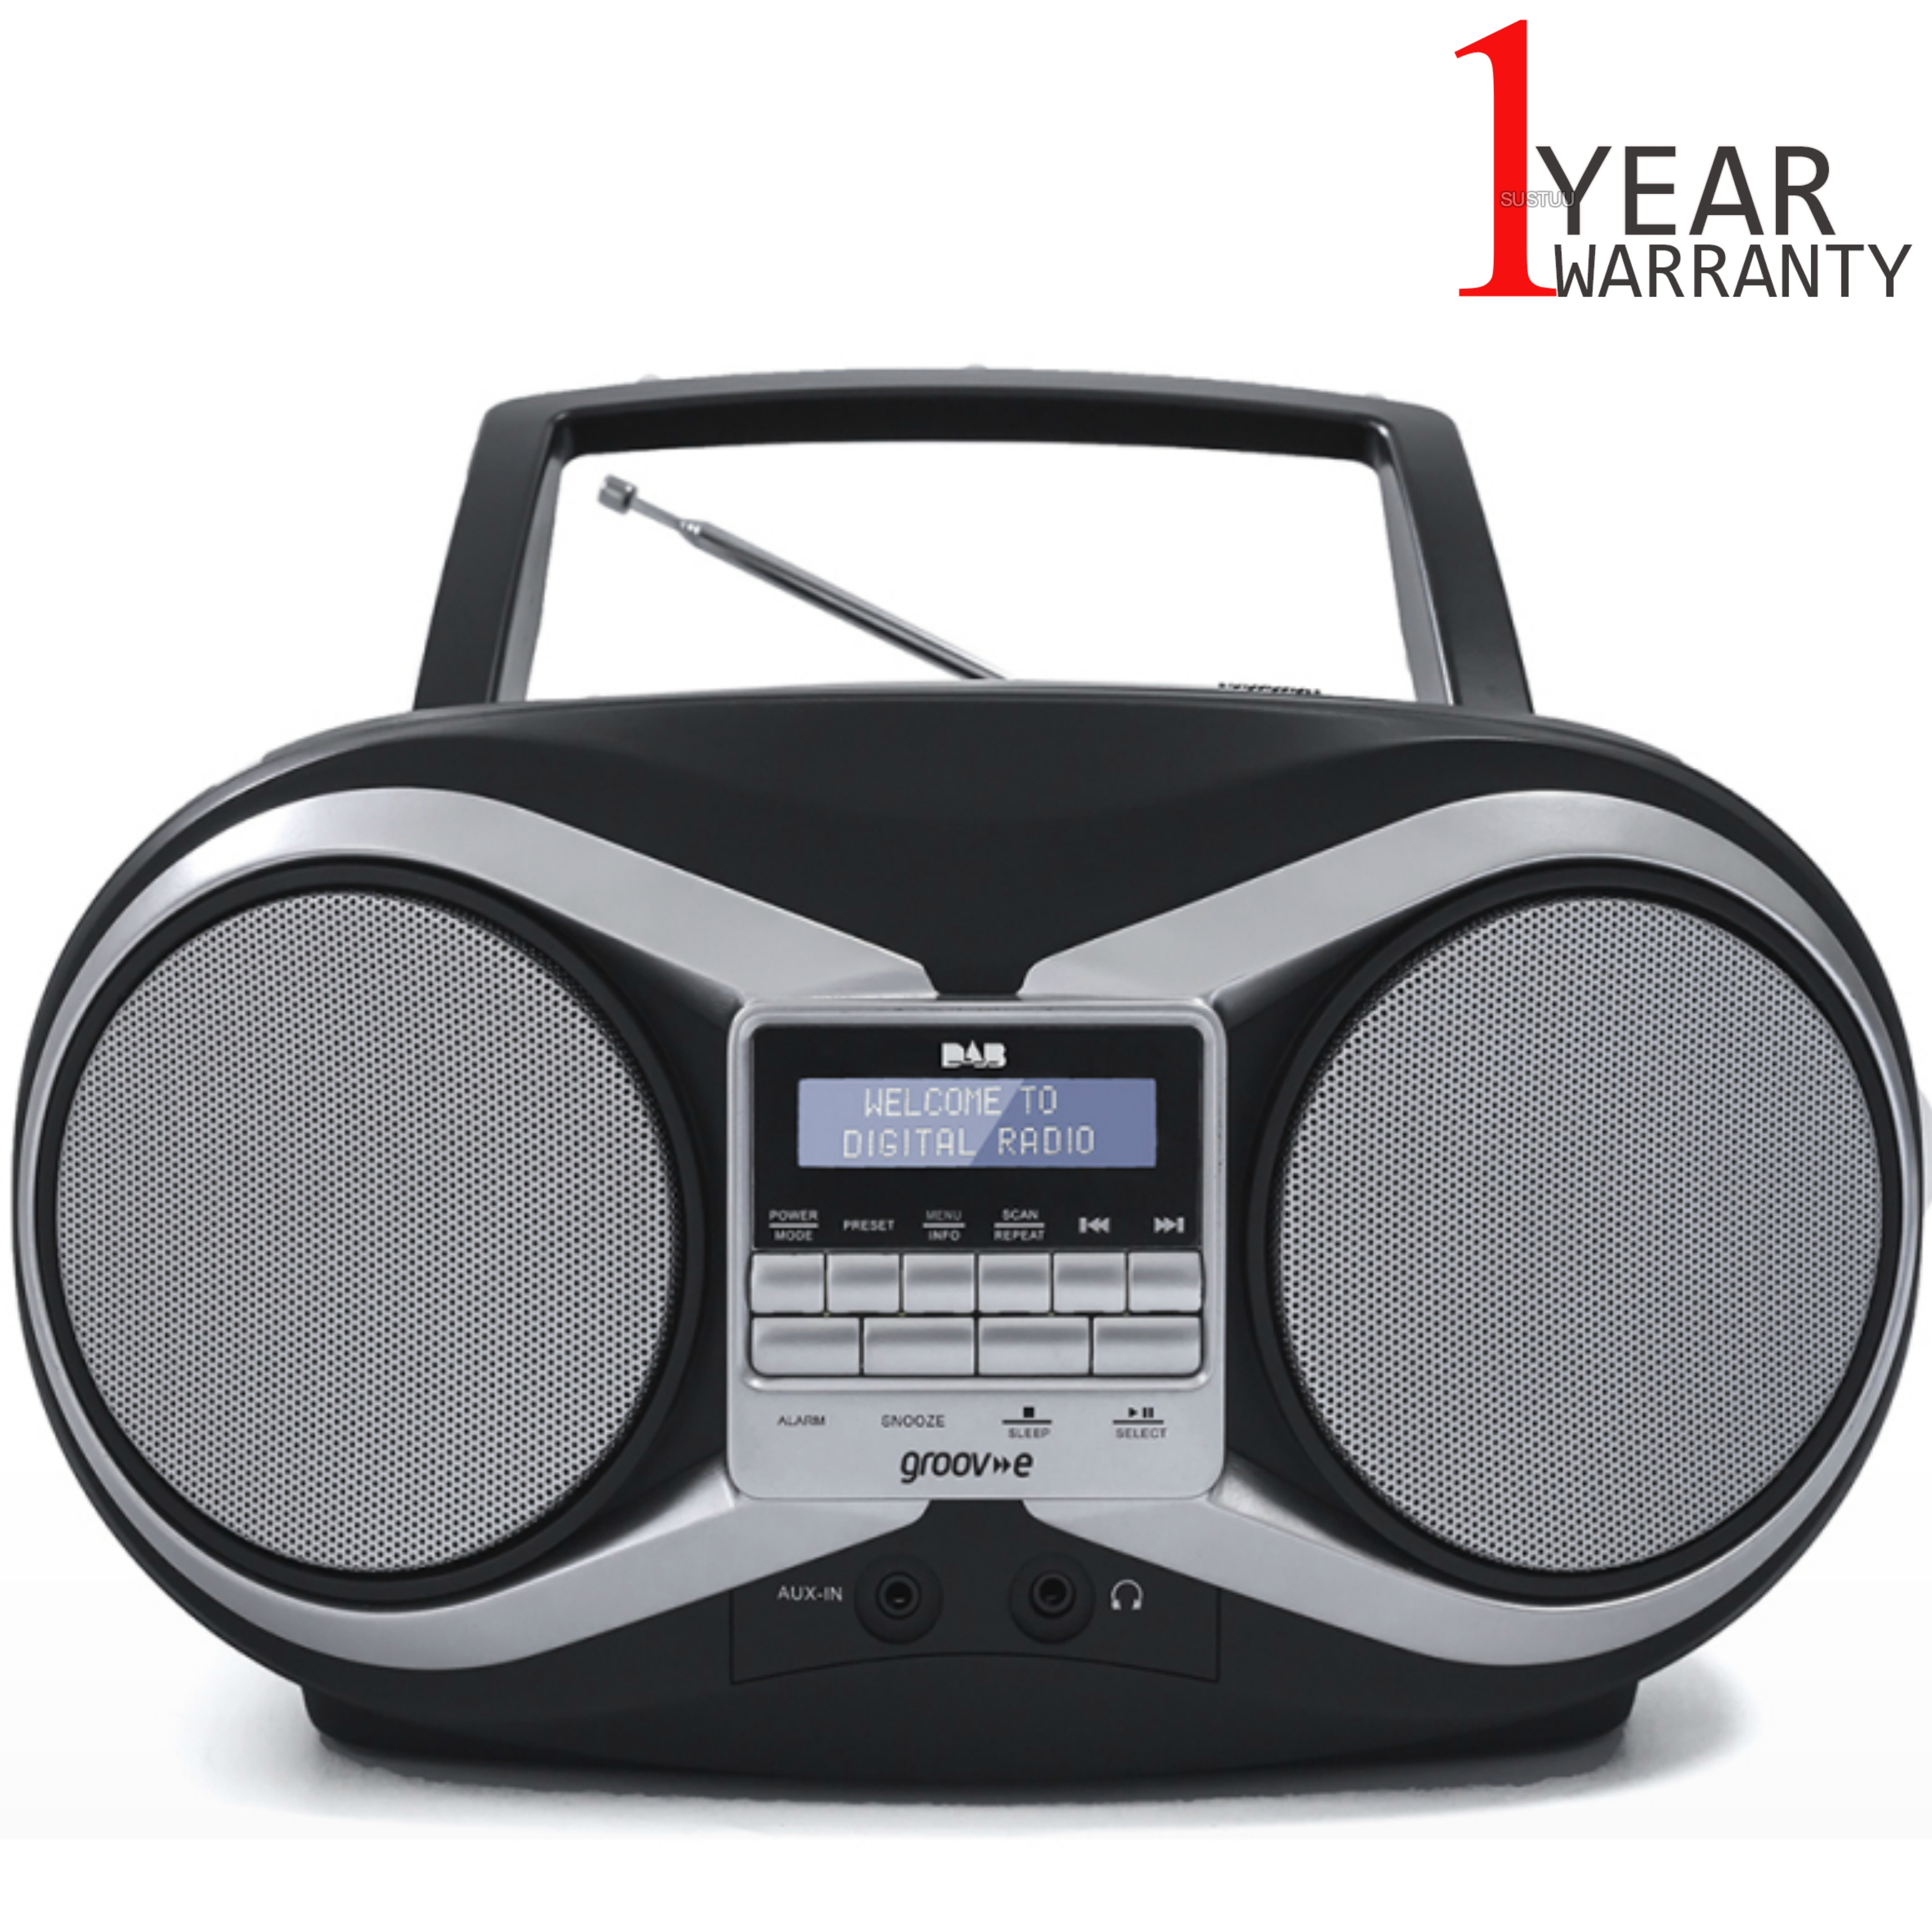 Groov-e Portable Boombox | Portable CD Player | DAB/FM Radio | GVPS753 | LCD Display | Black